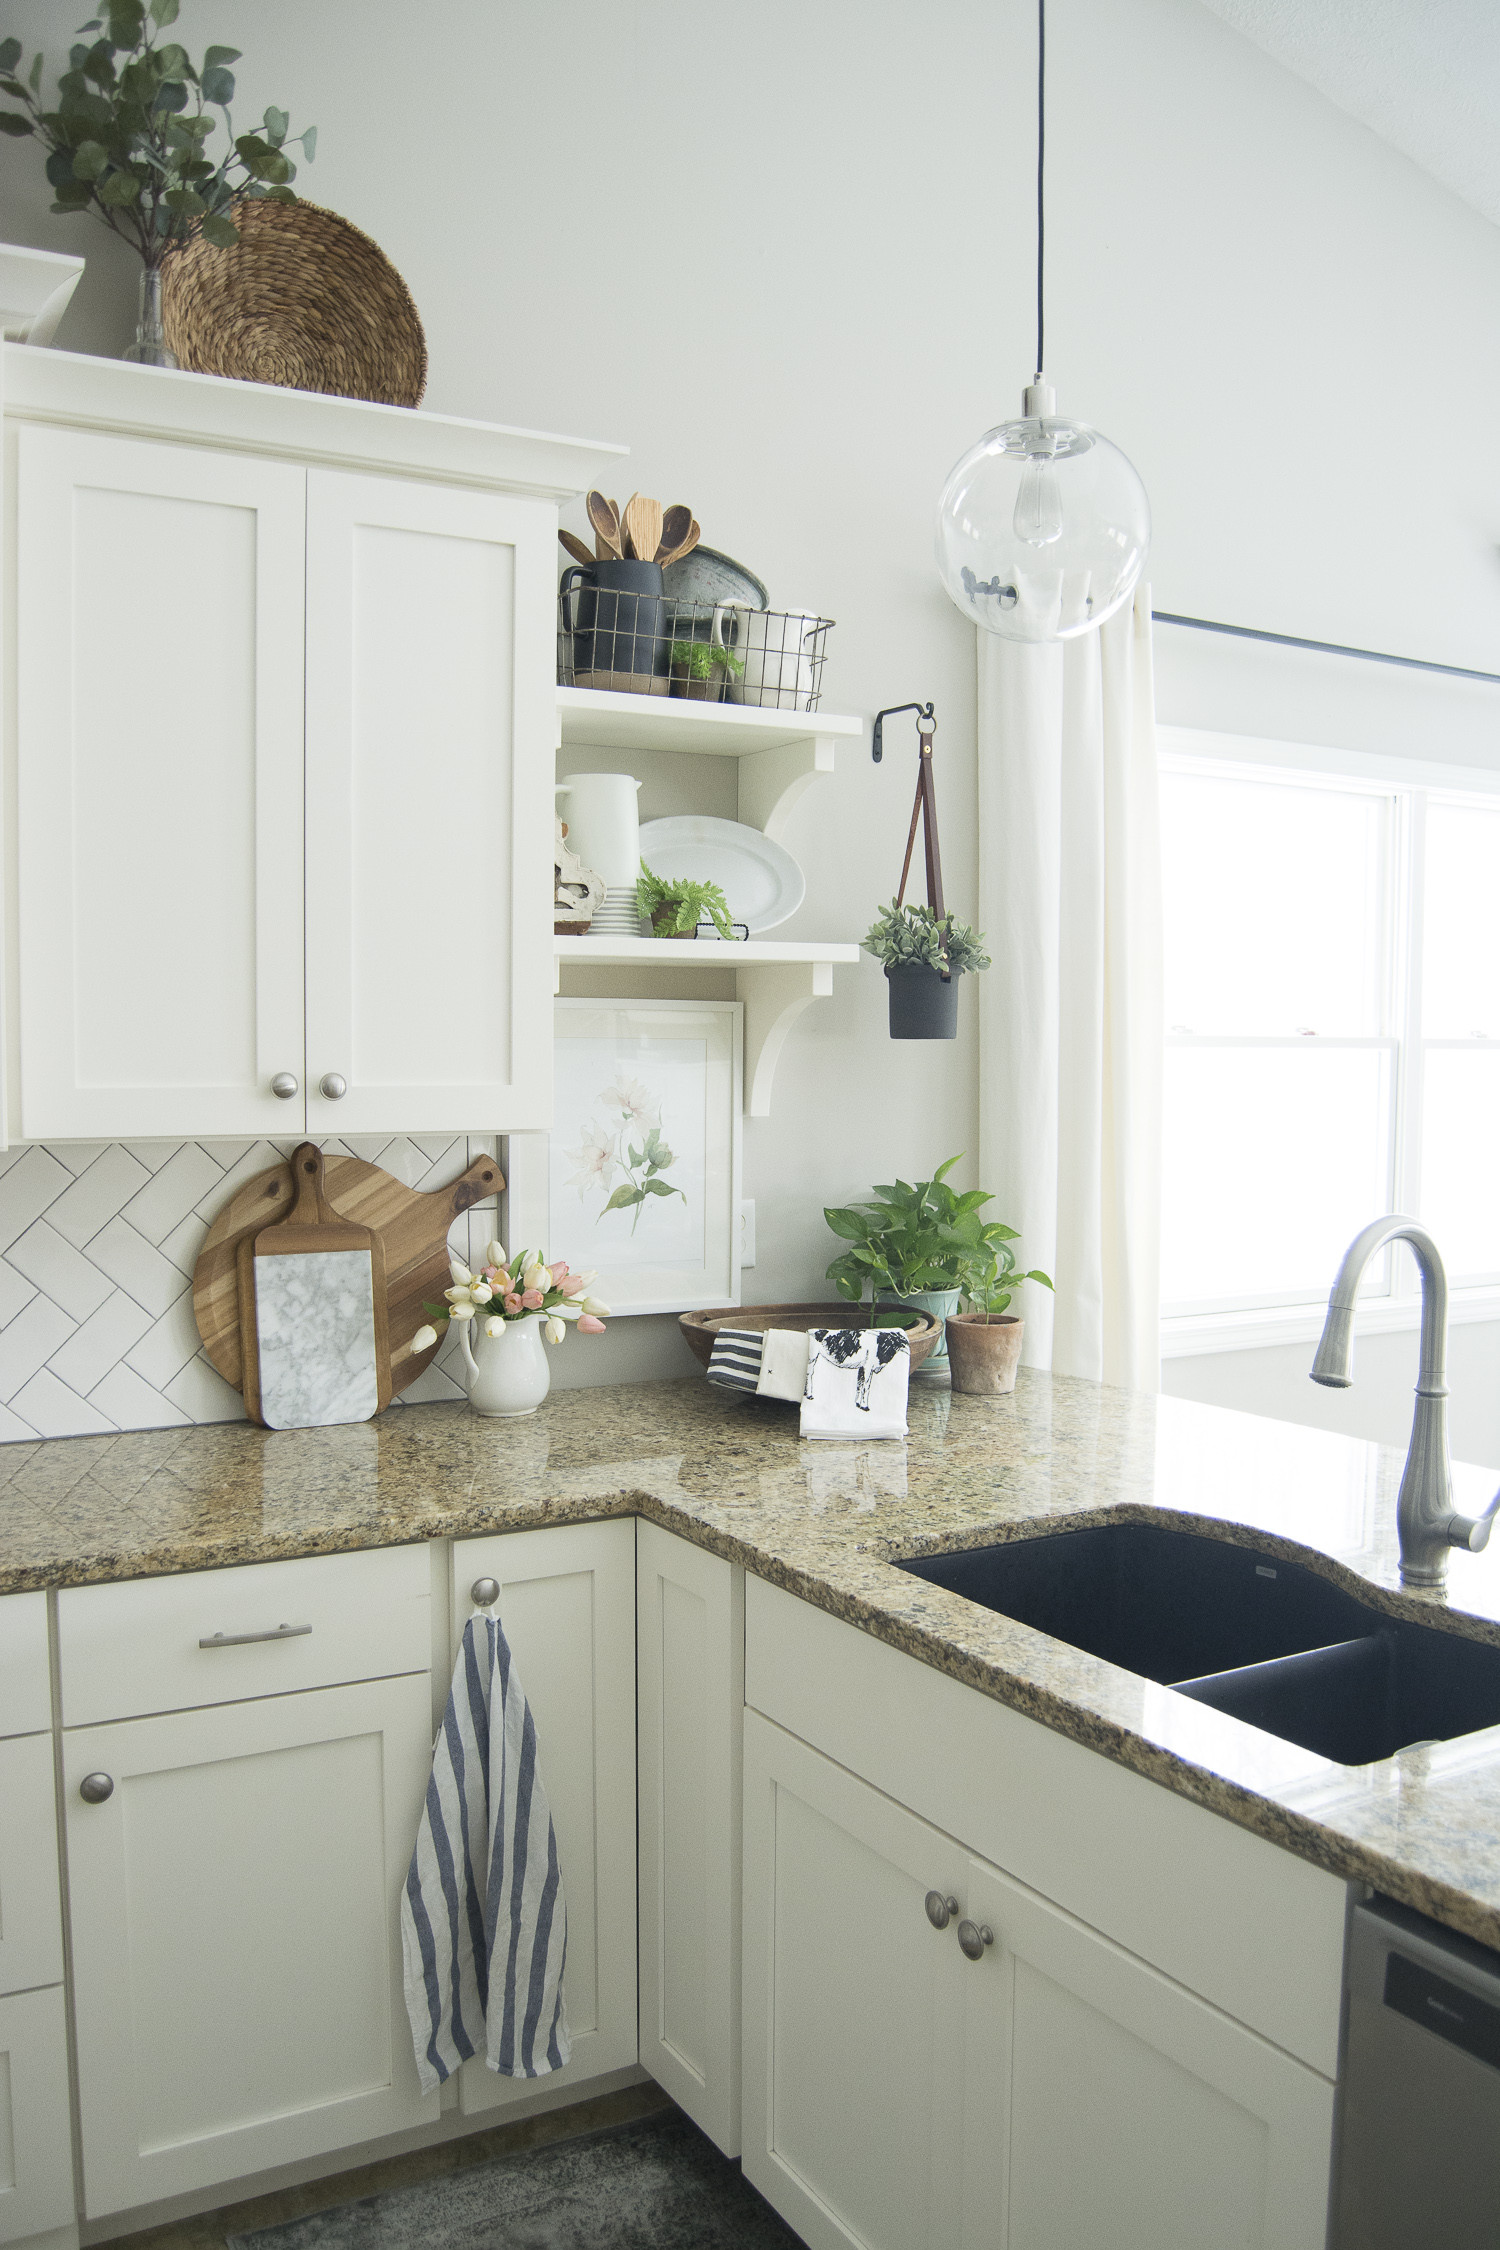 Best ideas about Kitchen Decorating Accessories . Save or Pin Spring Kitchen Decor Now.